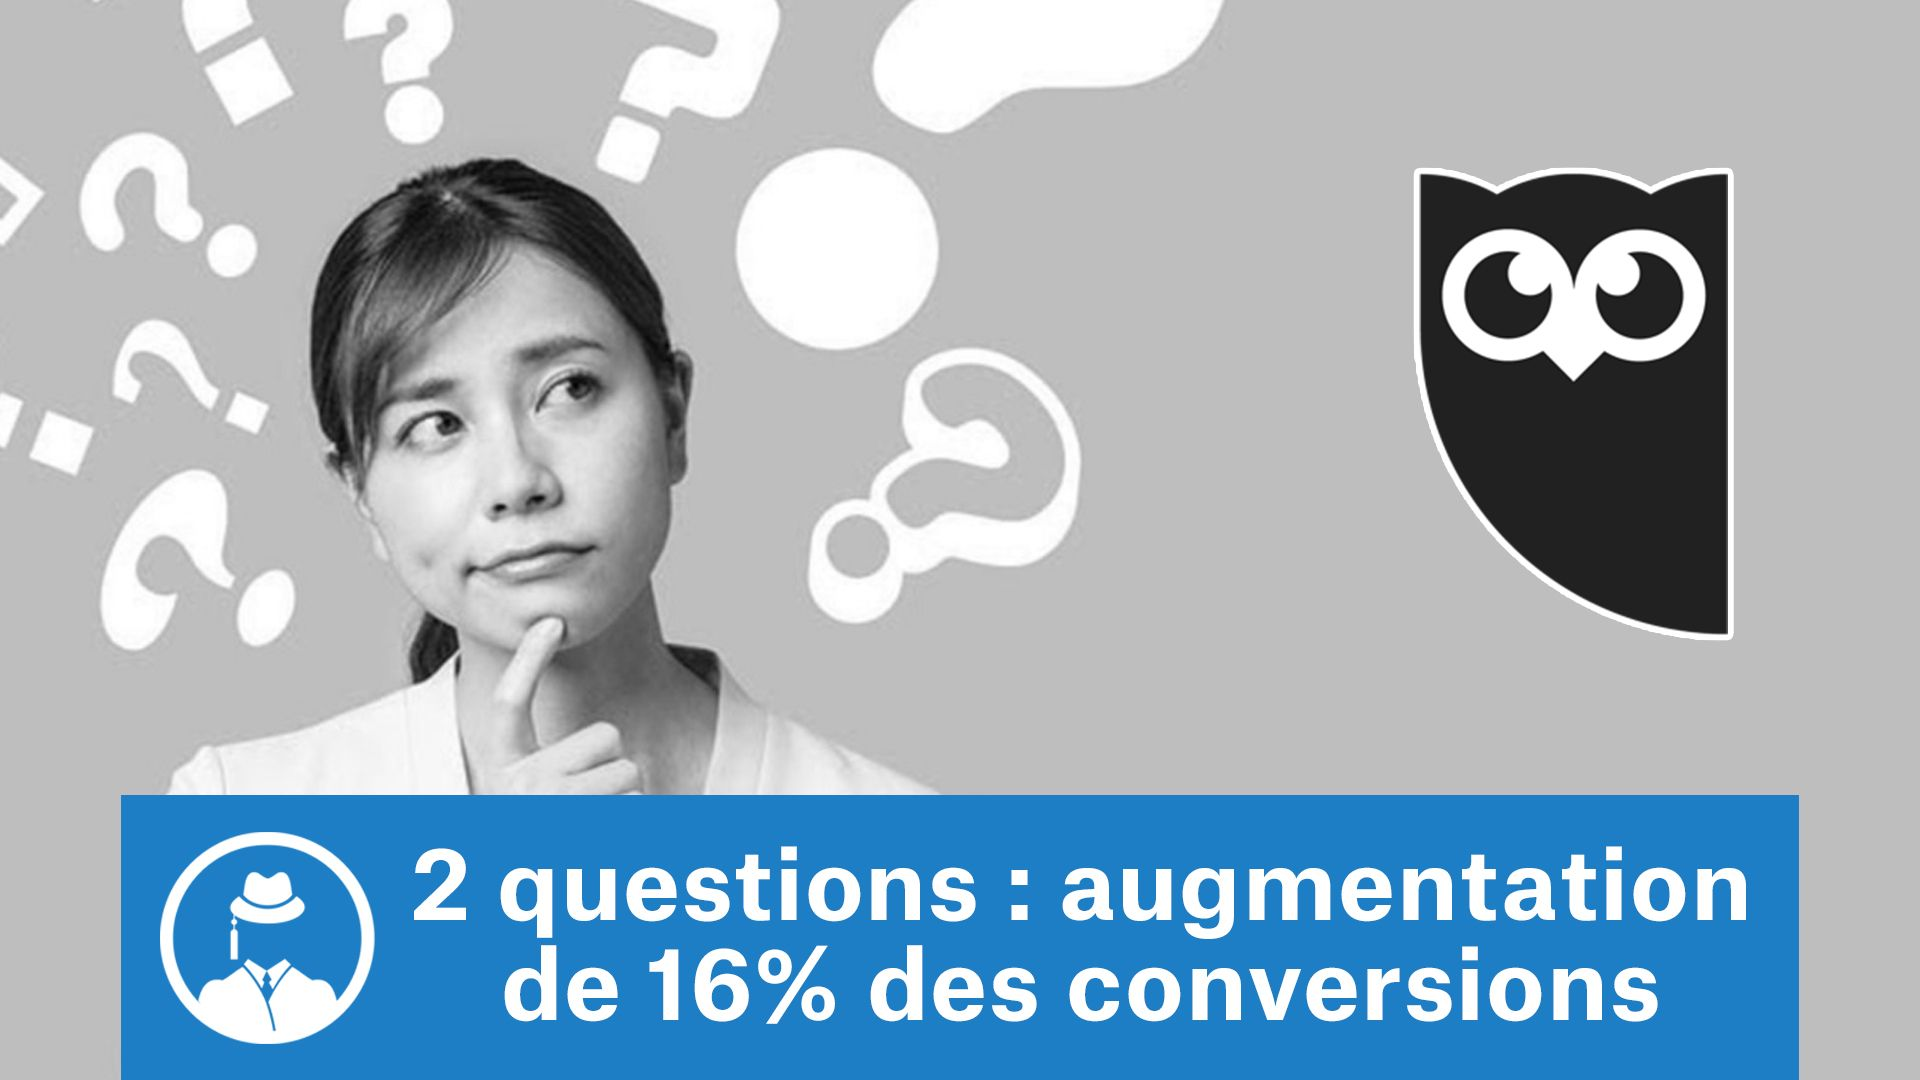 2 questions : augmentation de 16% des conversions #GrowthHacking #WebMarketing #FormationGrowthHacking #CentreDeFormationFrance #TunnelAARRR #AARRR #SocialMedia #CommunityManagement #SEO #MarketingDigital #SiteWeb #Hootsuite #landingpage